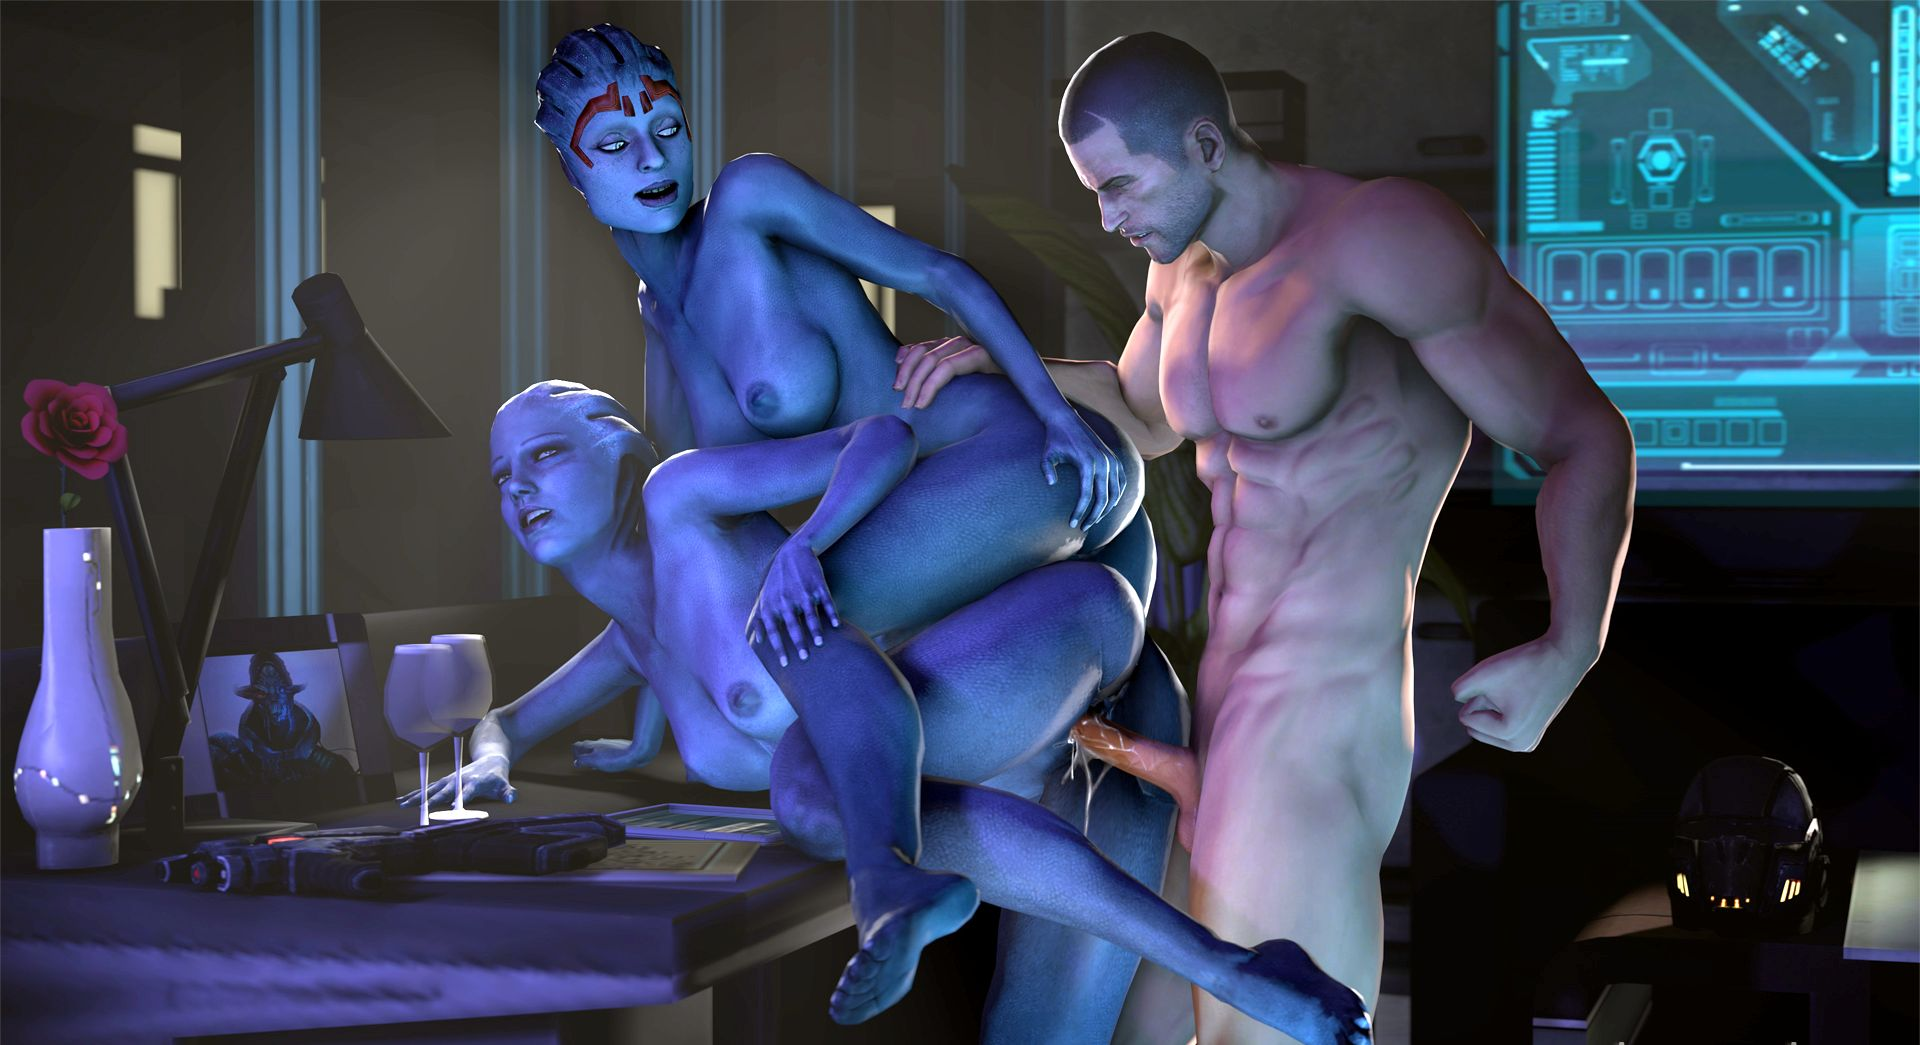 Erotic mass effect porn sex picture